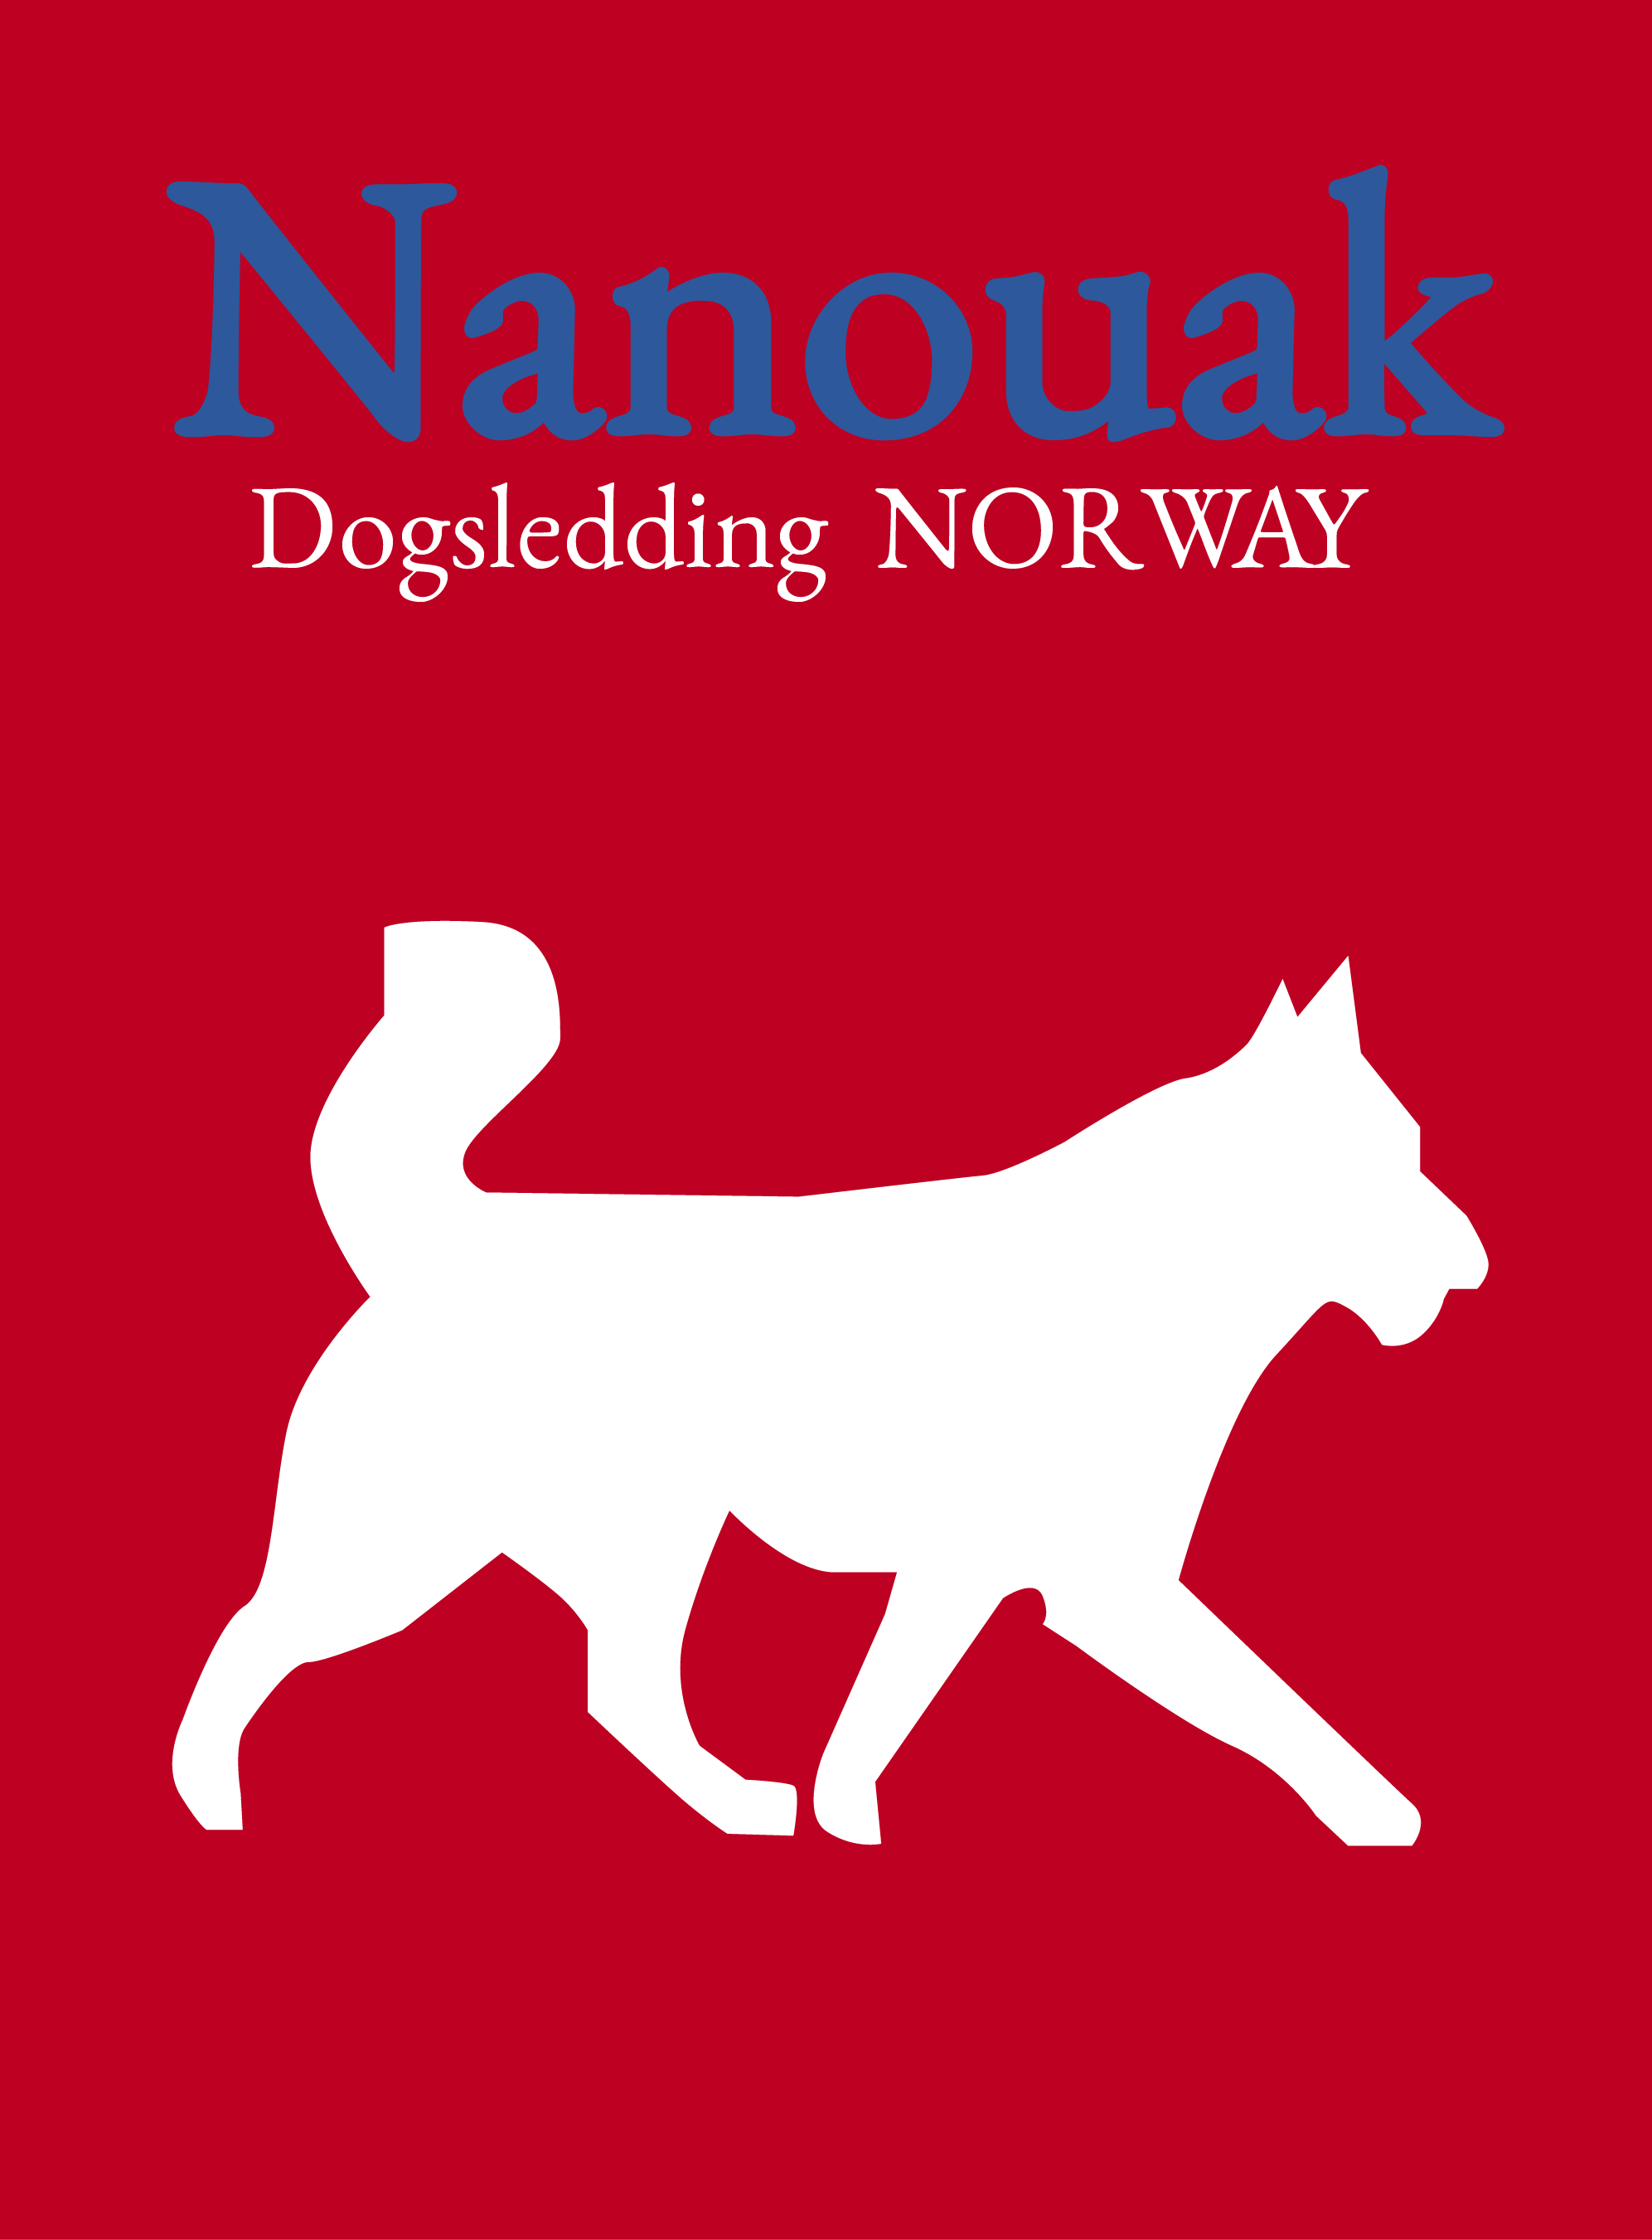 Nanouak Dogsledding Norway